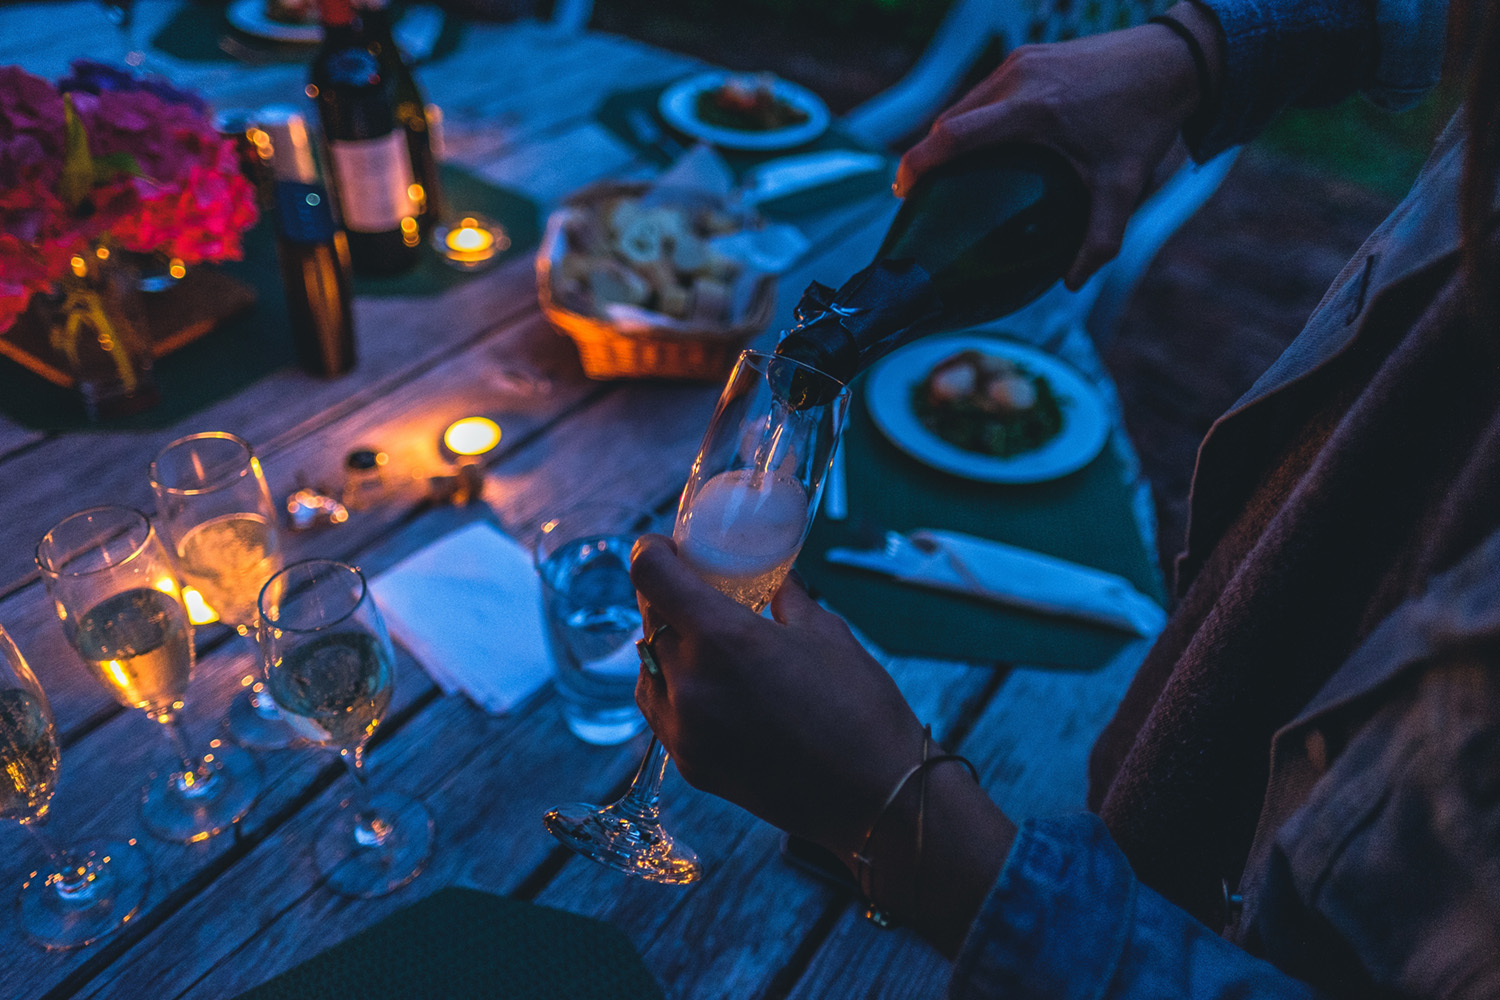 Photo of a woman pouring wine into a flute glass outside. Below her is a table filled with other glasses of wine and plates of food. The lighting is blue from nighttime, and there are warmly-colored candles scattered around the table.